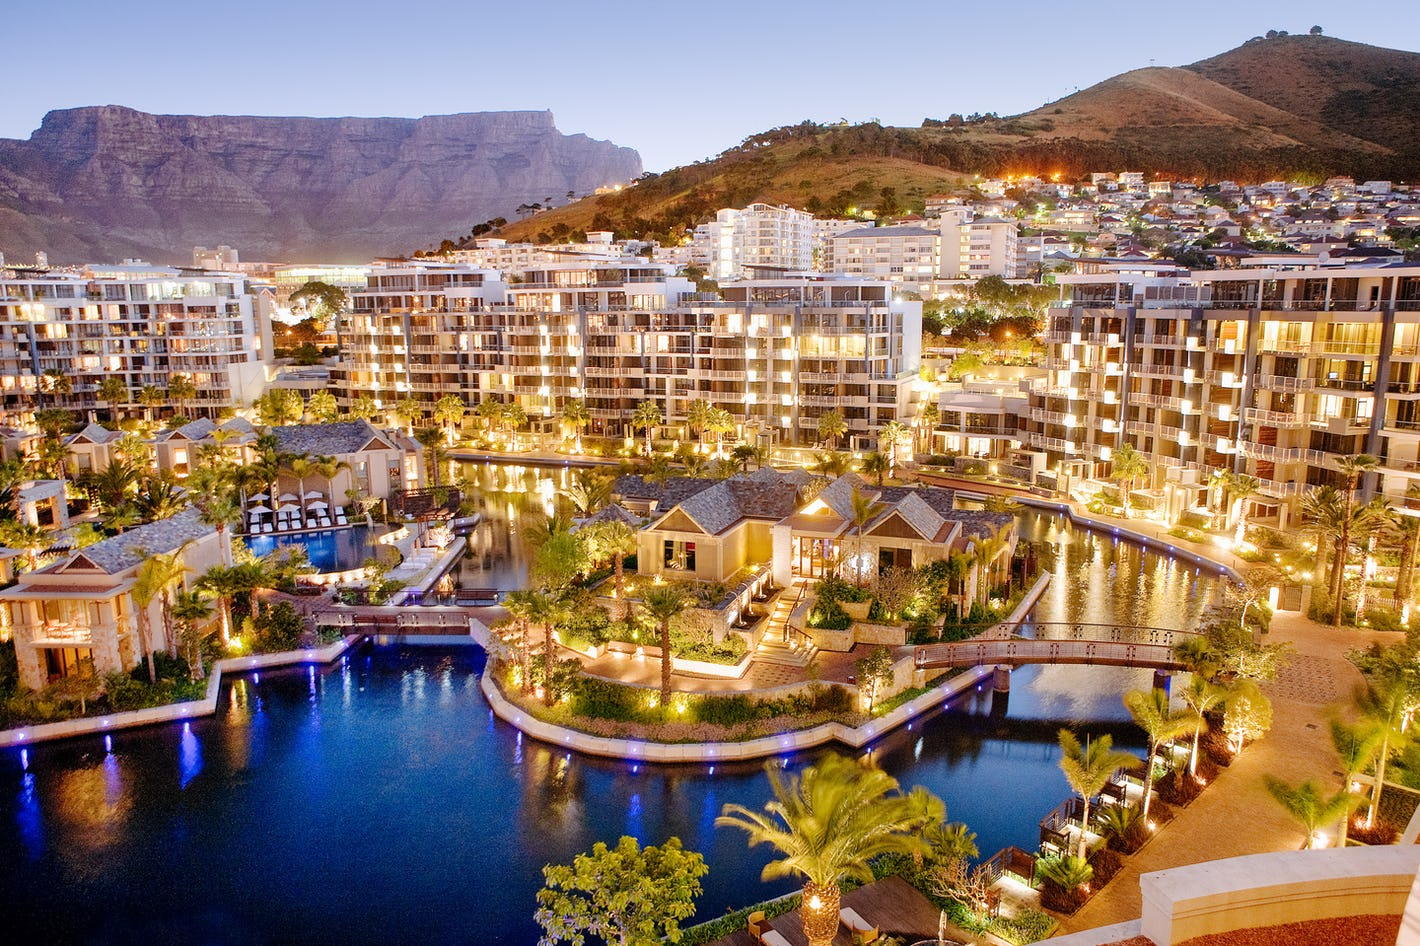 Top 5 Amazing Hotels In South Africa For A Getaway.